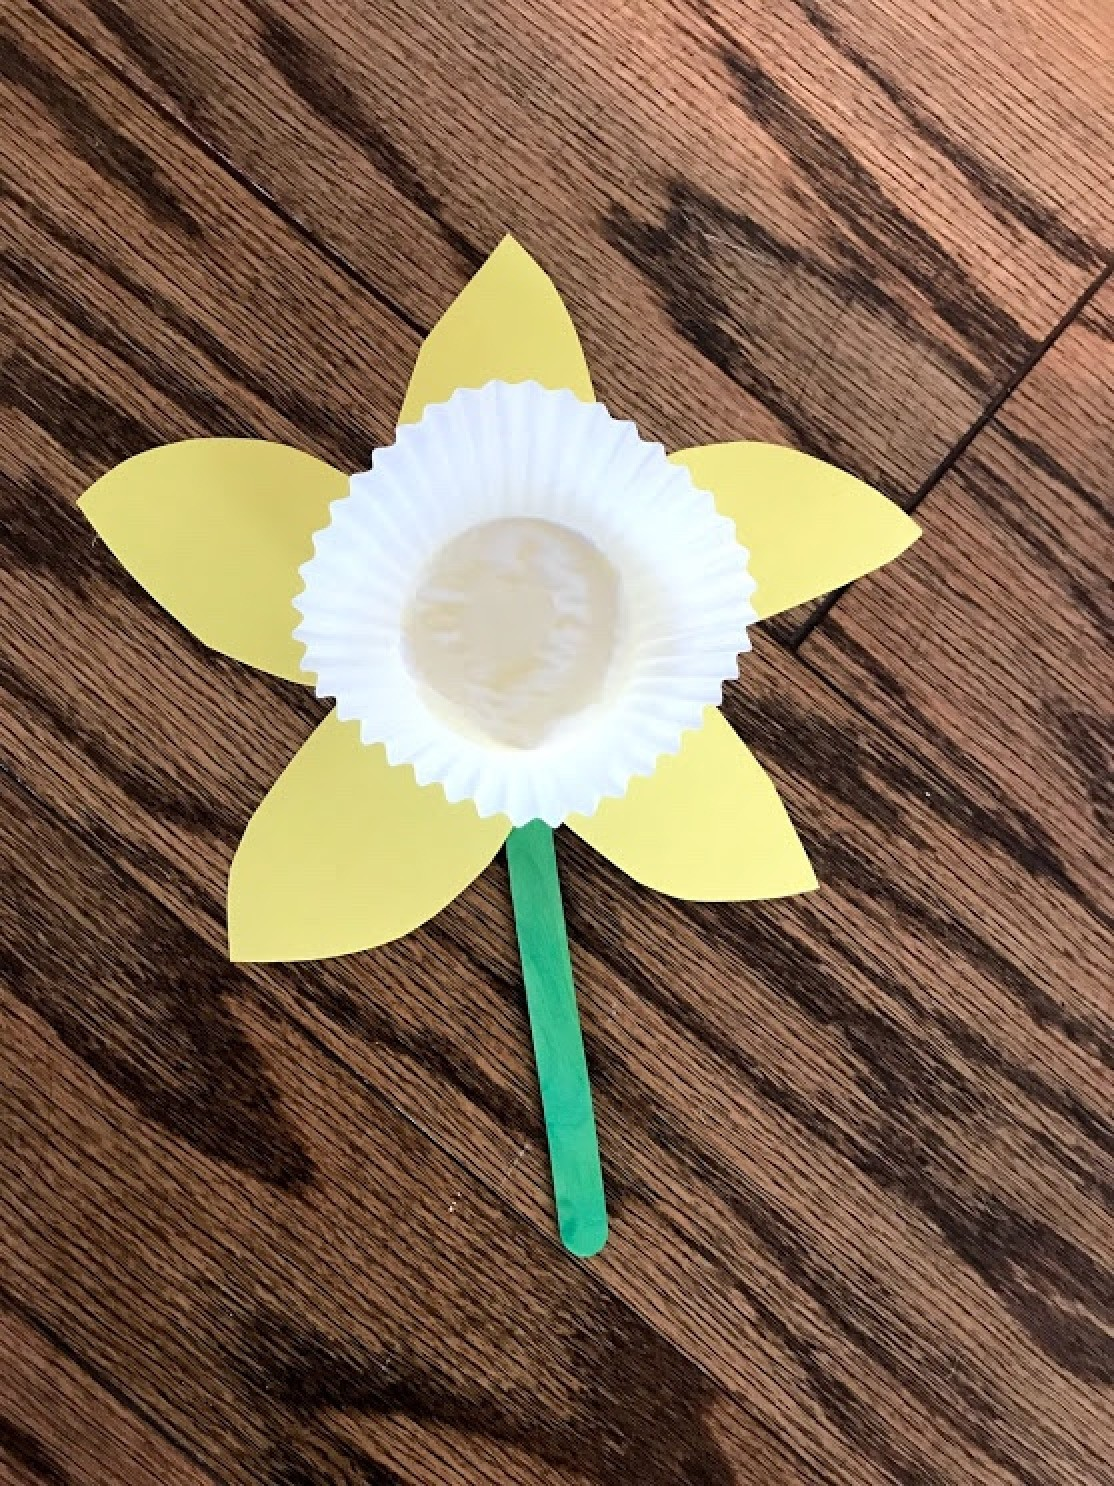 How to make an origami daffodil flower: page 23 | 1486x1114